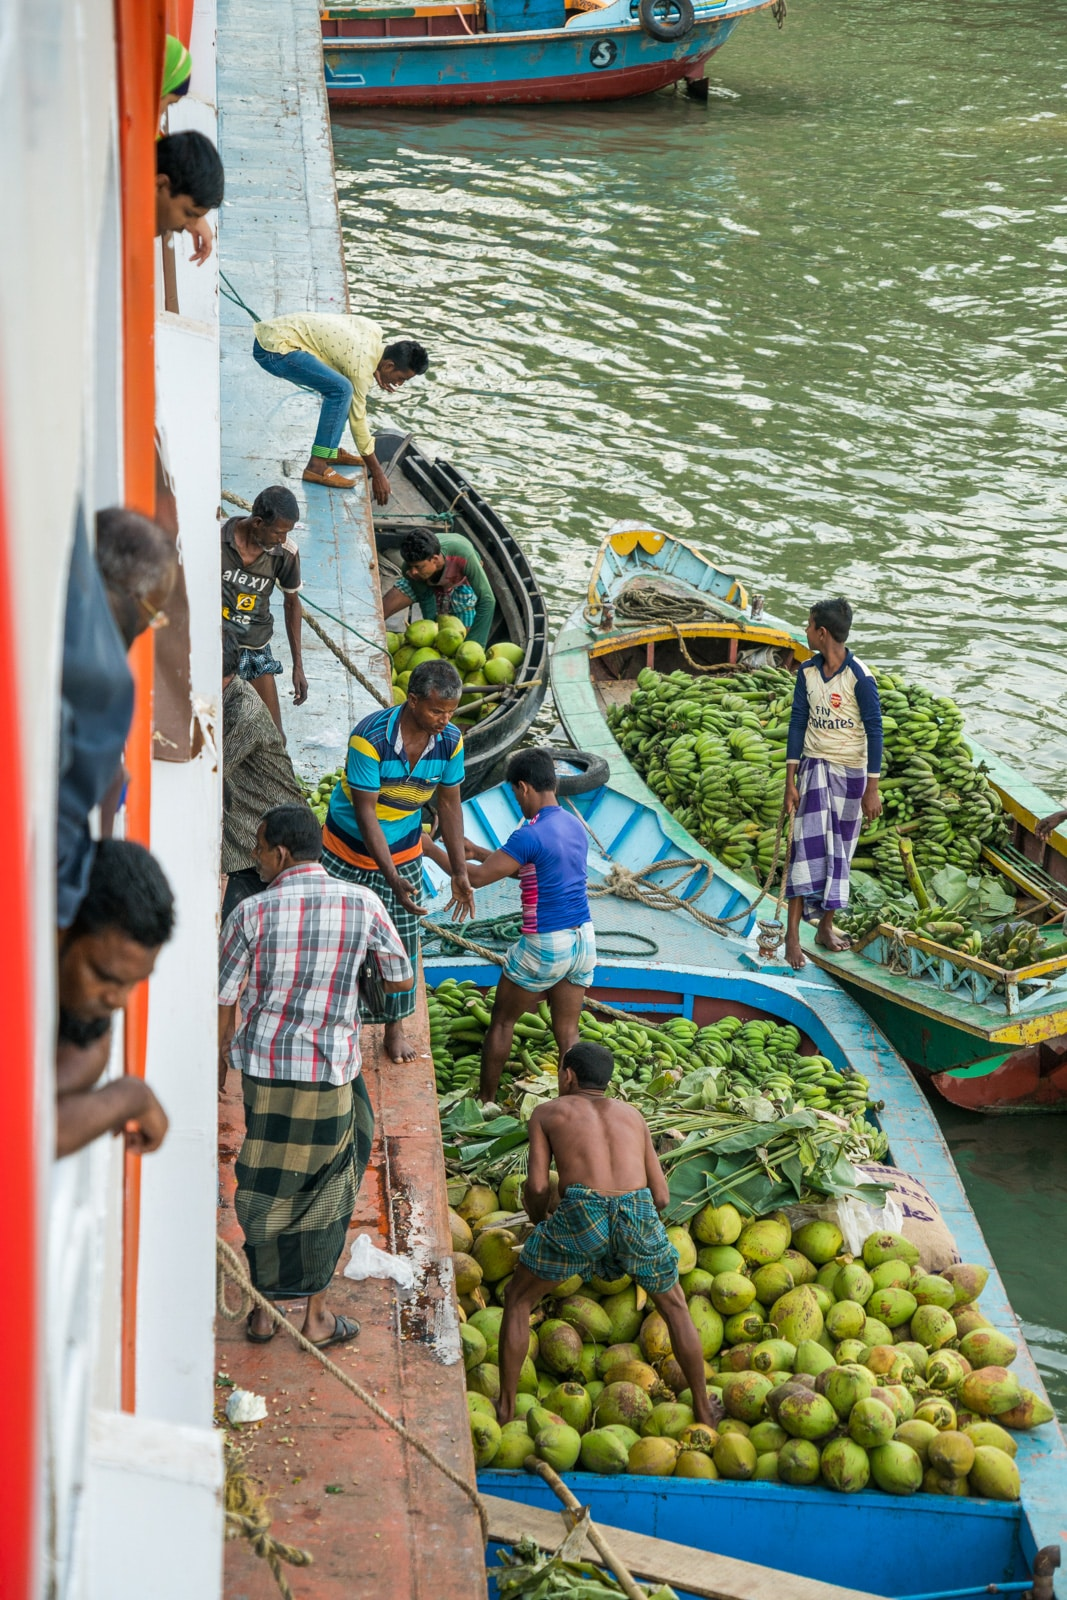 Several boats of men loading bananas and coconuts onto a launch boat in Bangladesh.